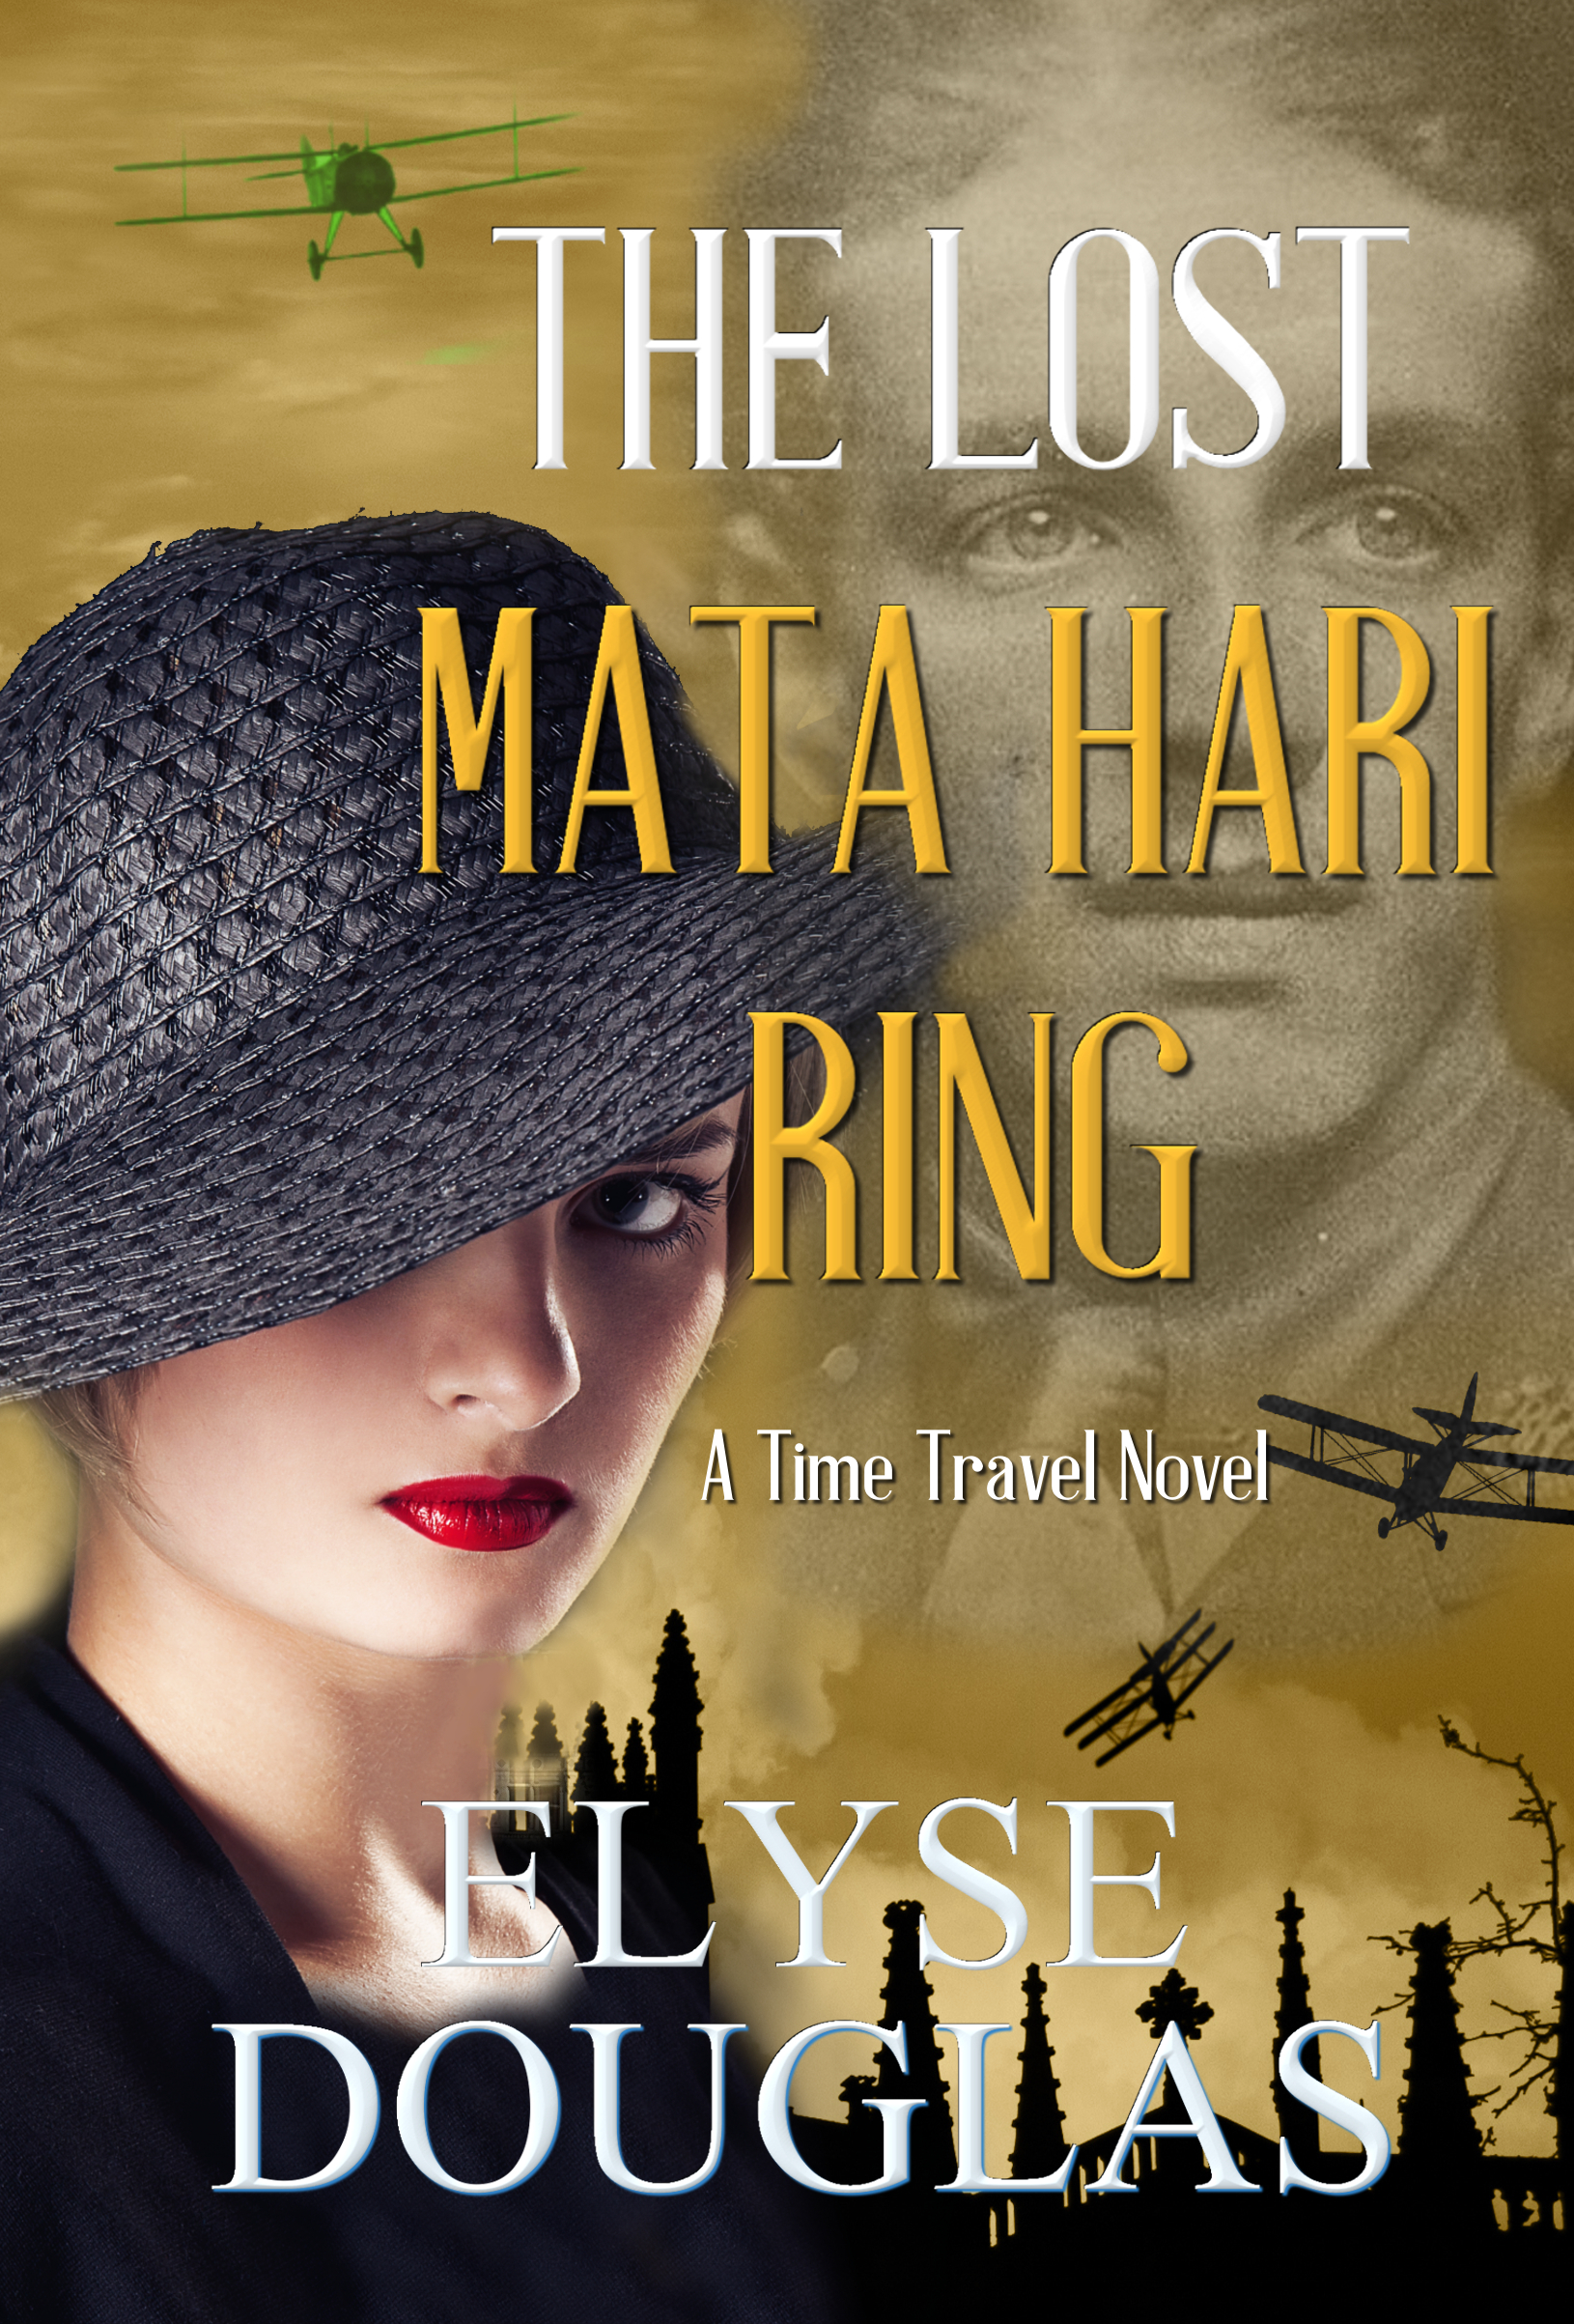 The Lost Mata Hari Ring by Elyse Douglas – Blog Tour, Book Review and Giveaway